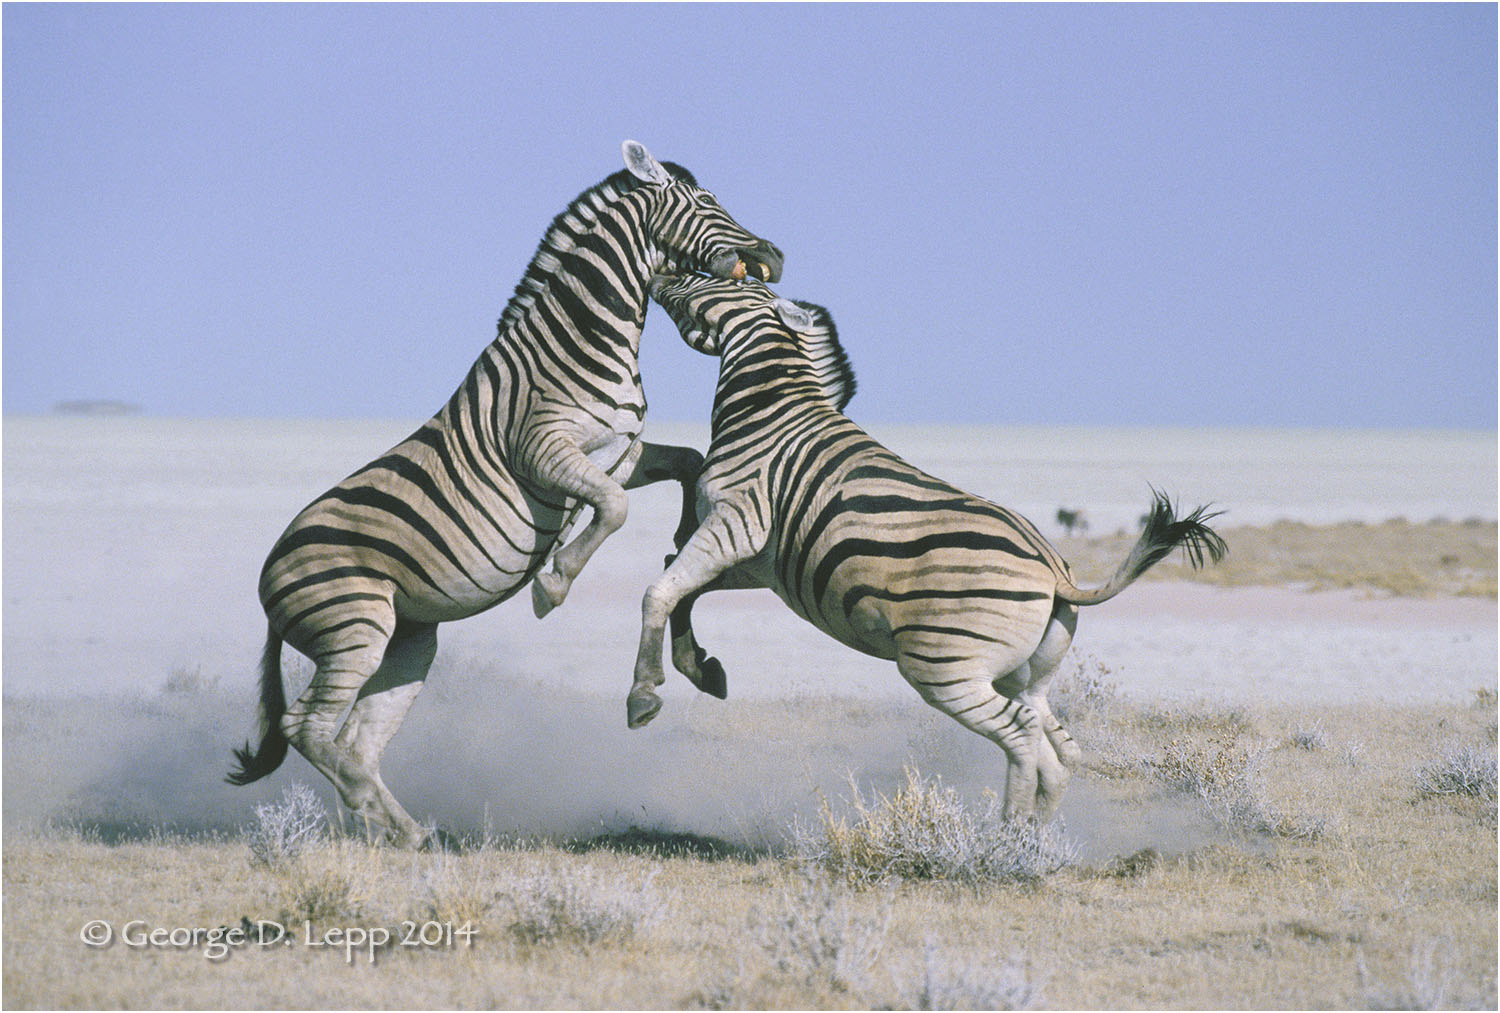 Male zebras fighting, Namibia, Africa. © George D. Lepp 2014  M-ZE-PL-0003